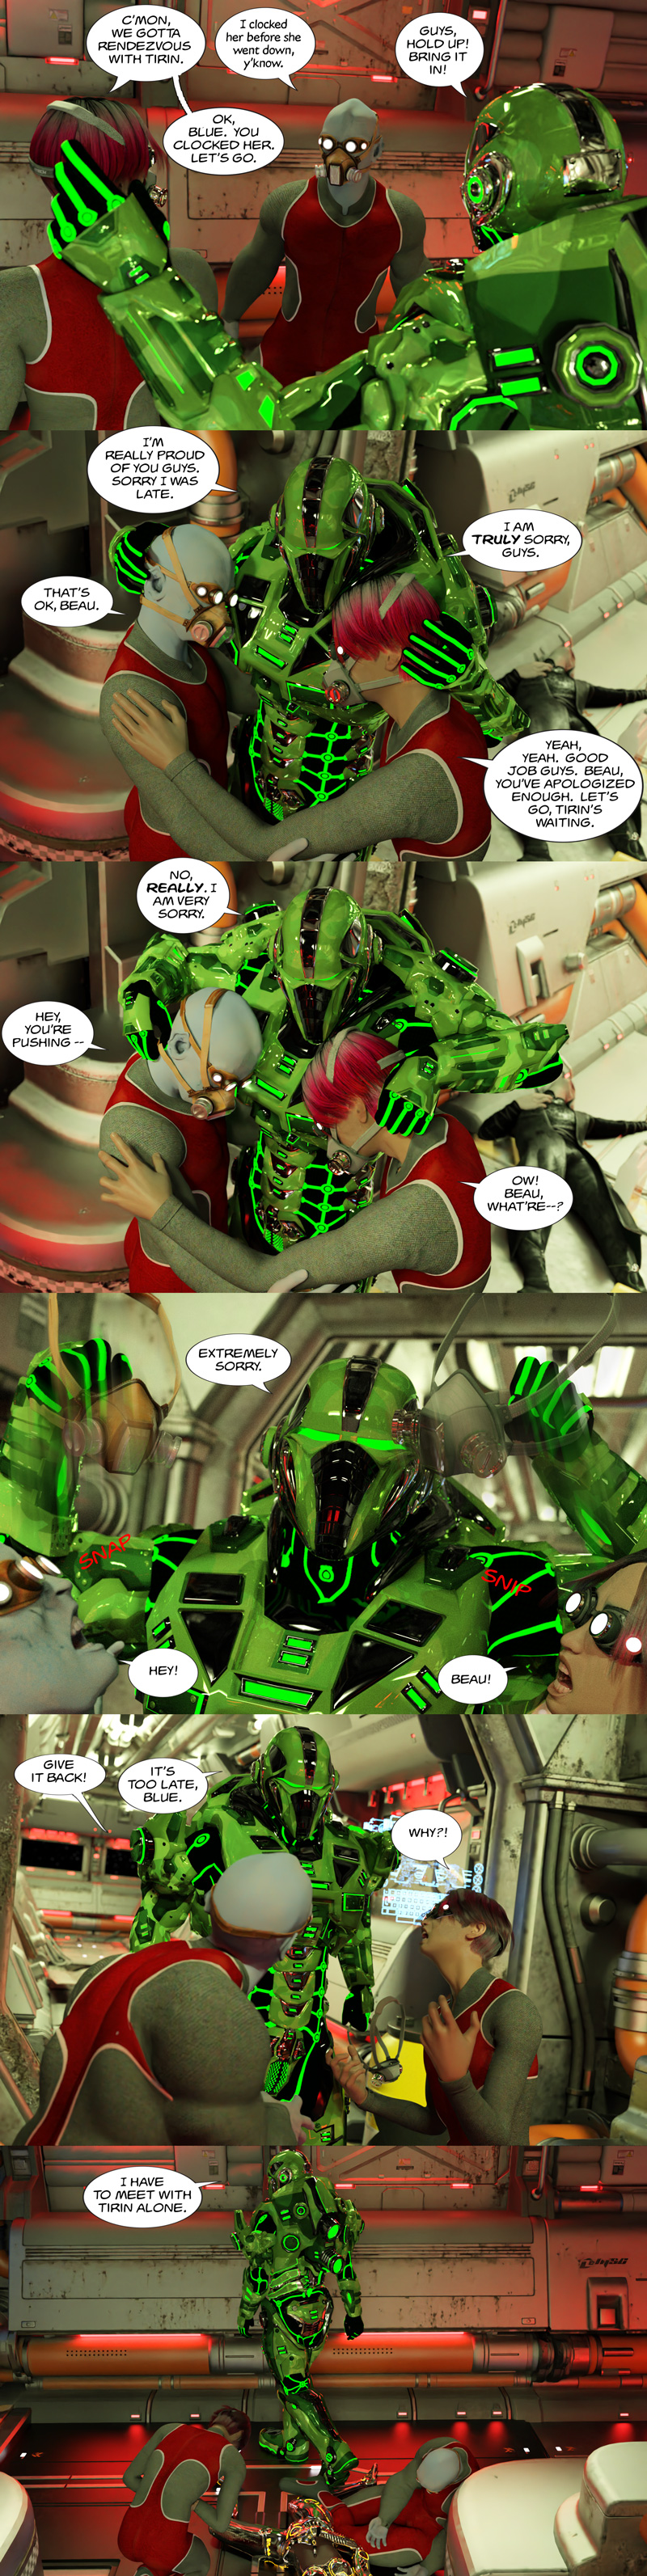 Chapter 13, page 35